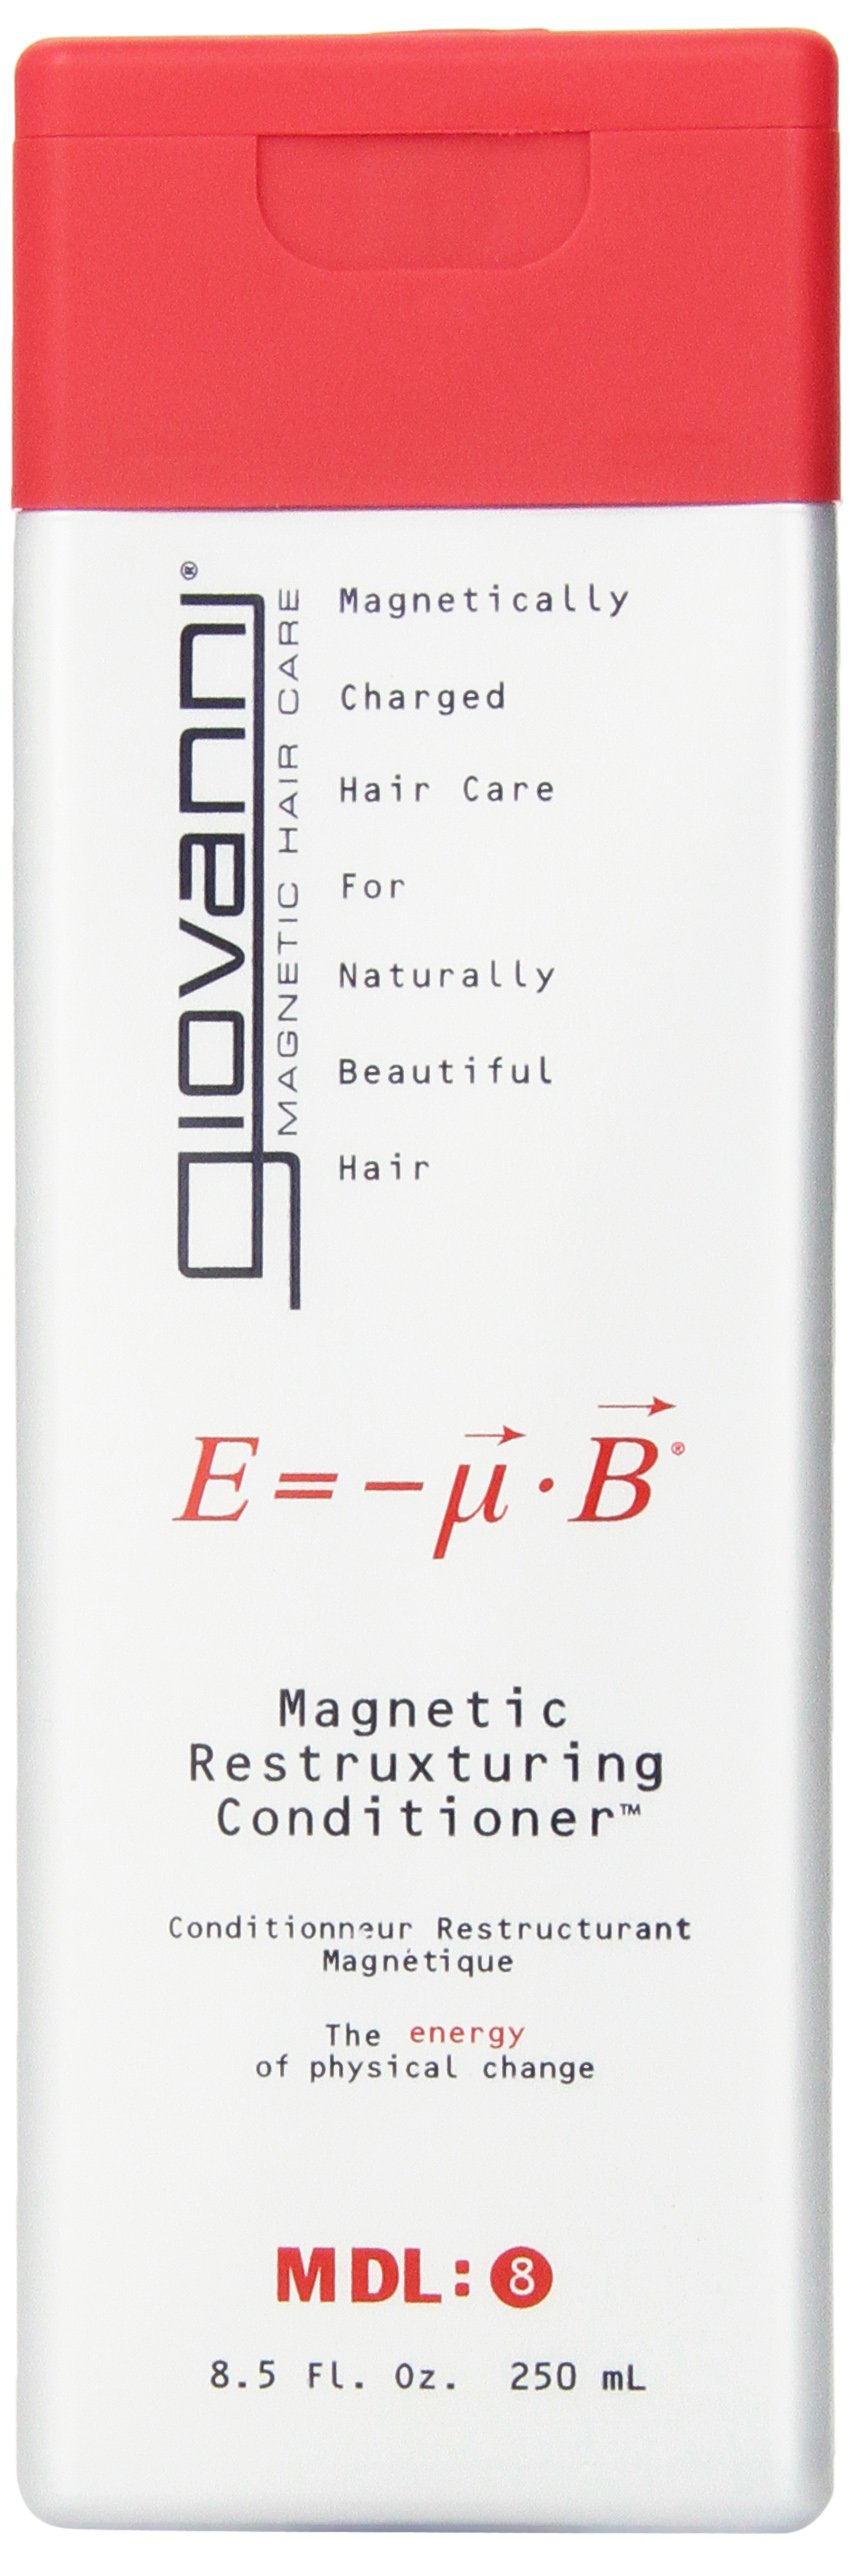 GIOVANNI HAIR CARE PRODUCTS COND,MAGNETIC,RESTRUXTURE, 8.5 FZ, 3 pack